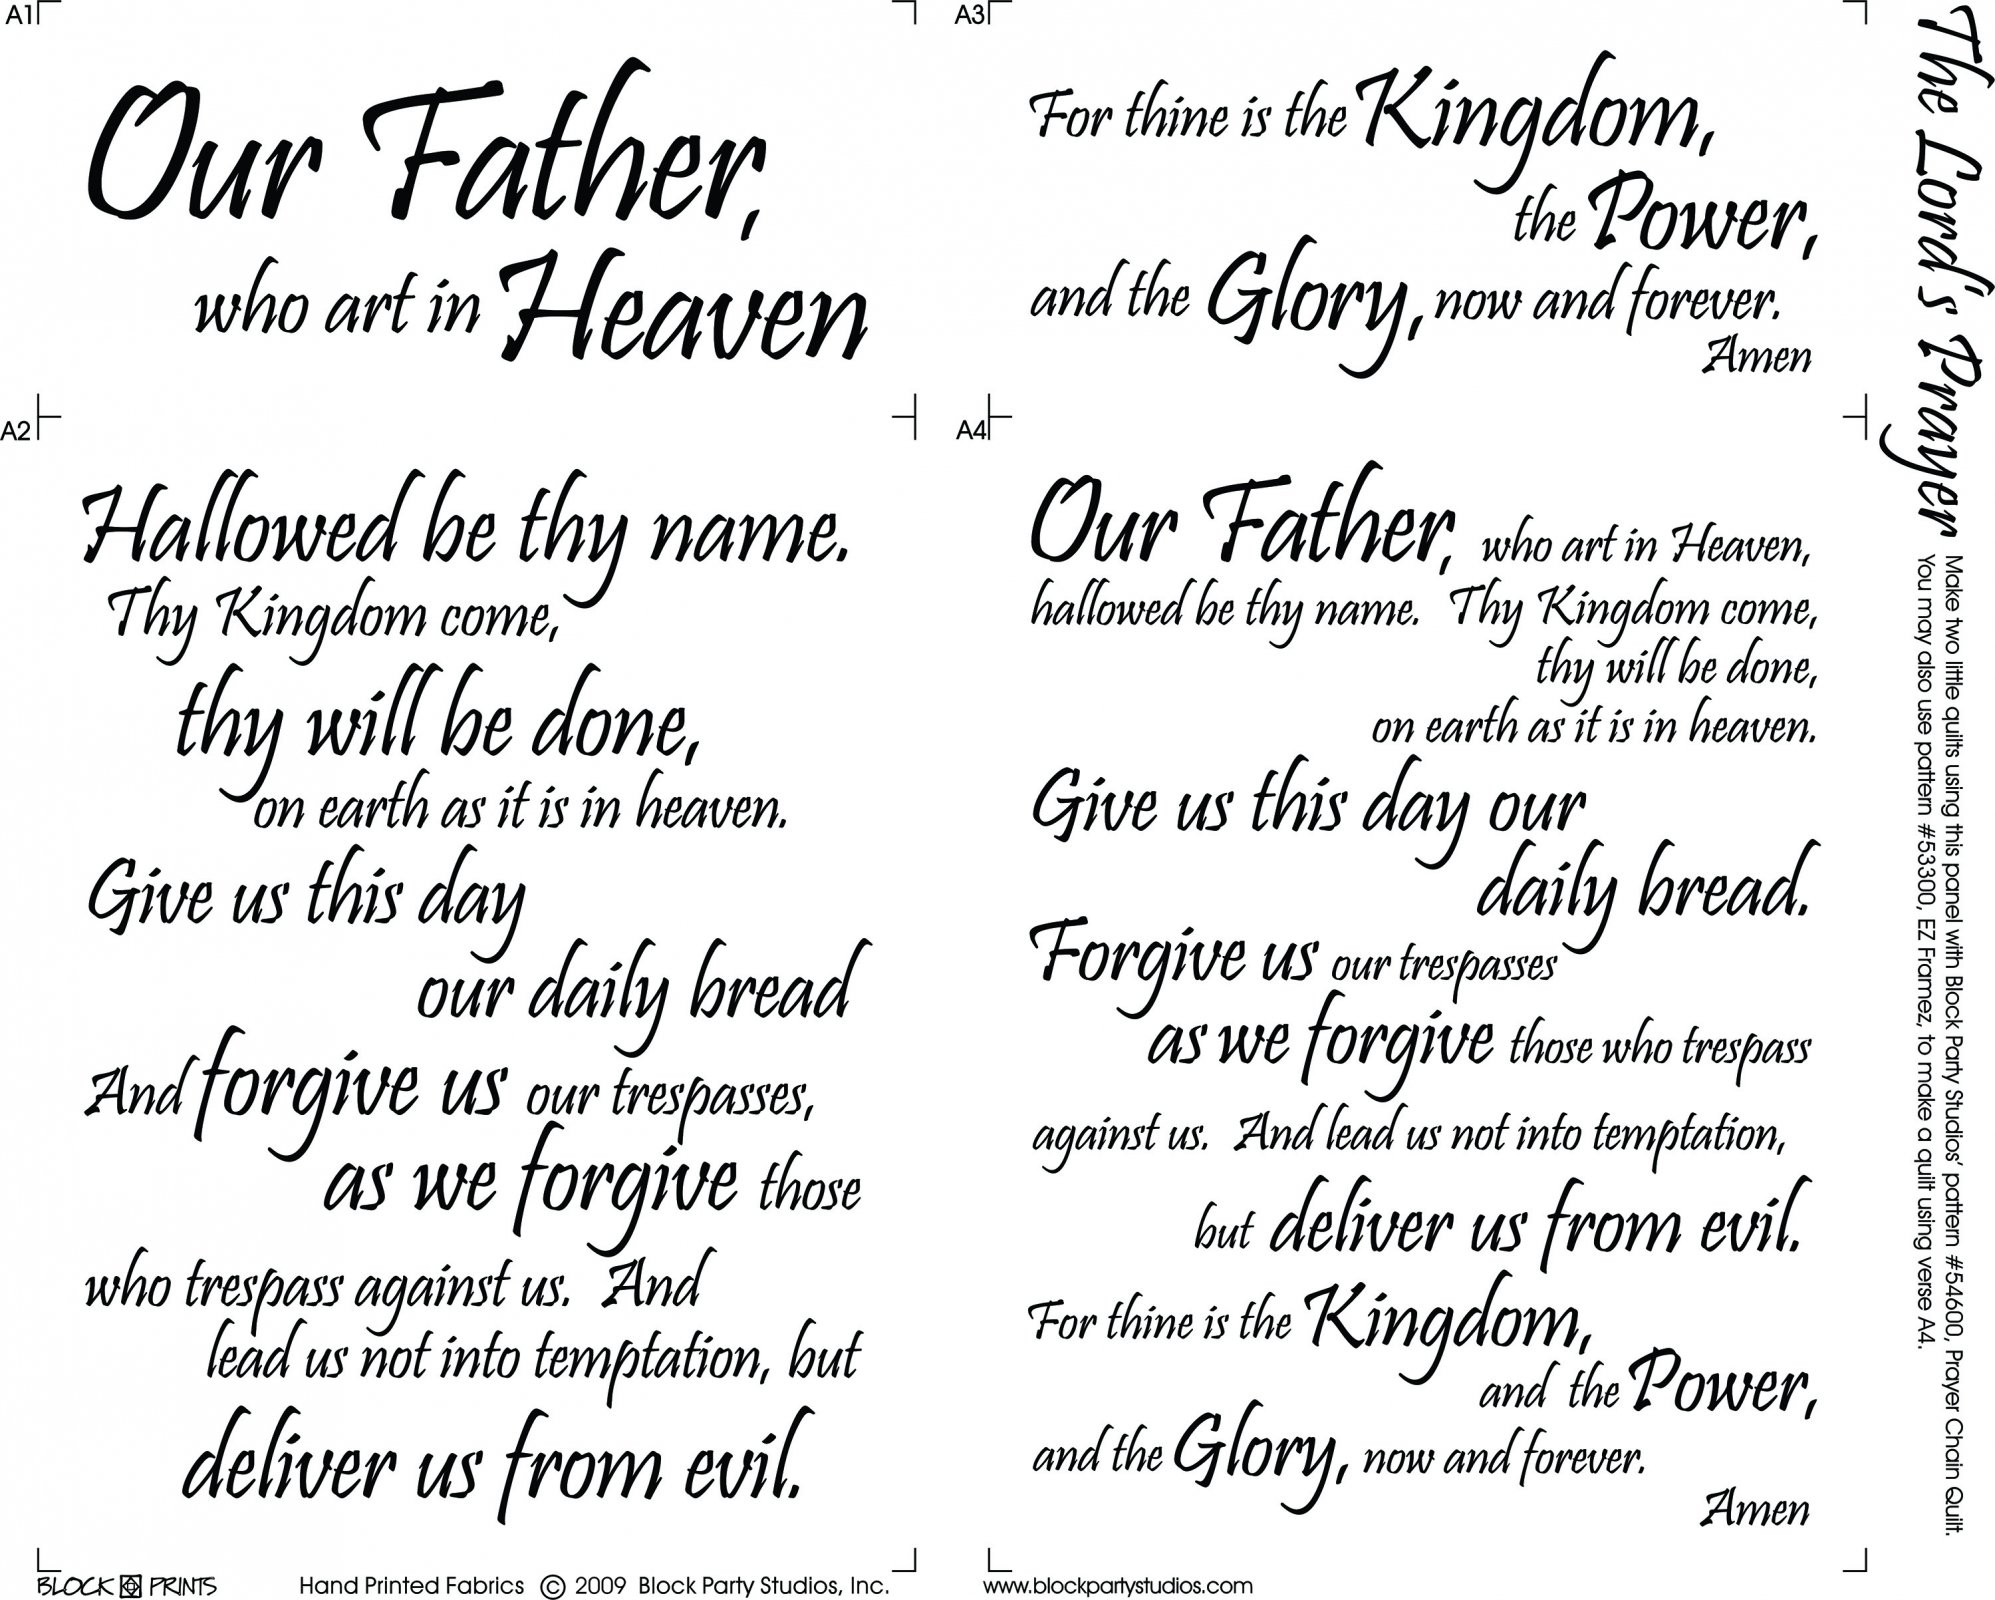 understanding the lord's prayer The our father is the lord's prayer and is a summation of the whole gospel the lord's prayer meditation is a quest to understand the christian life.